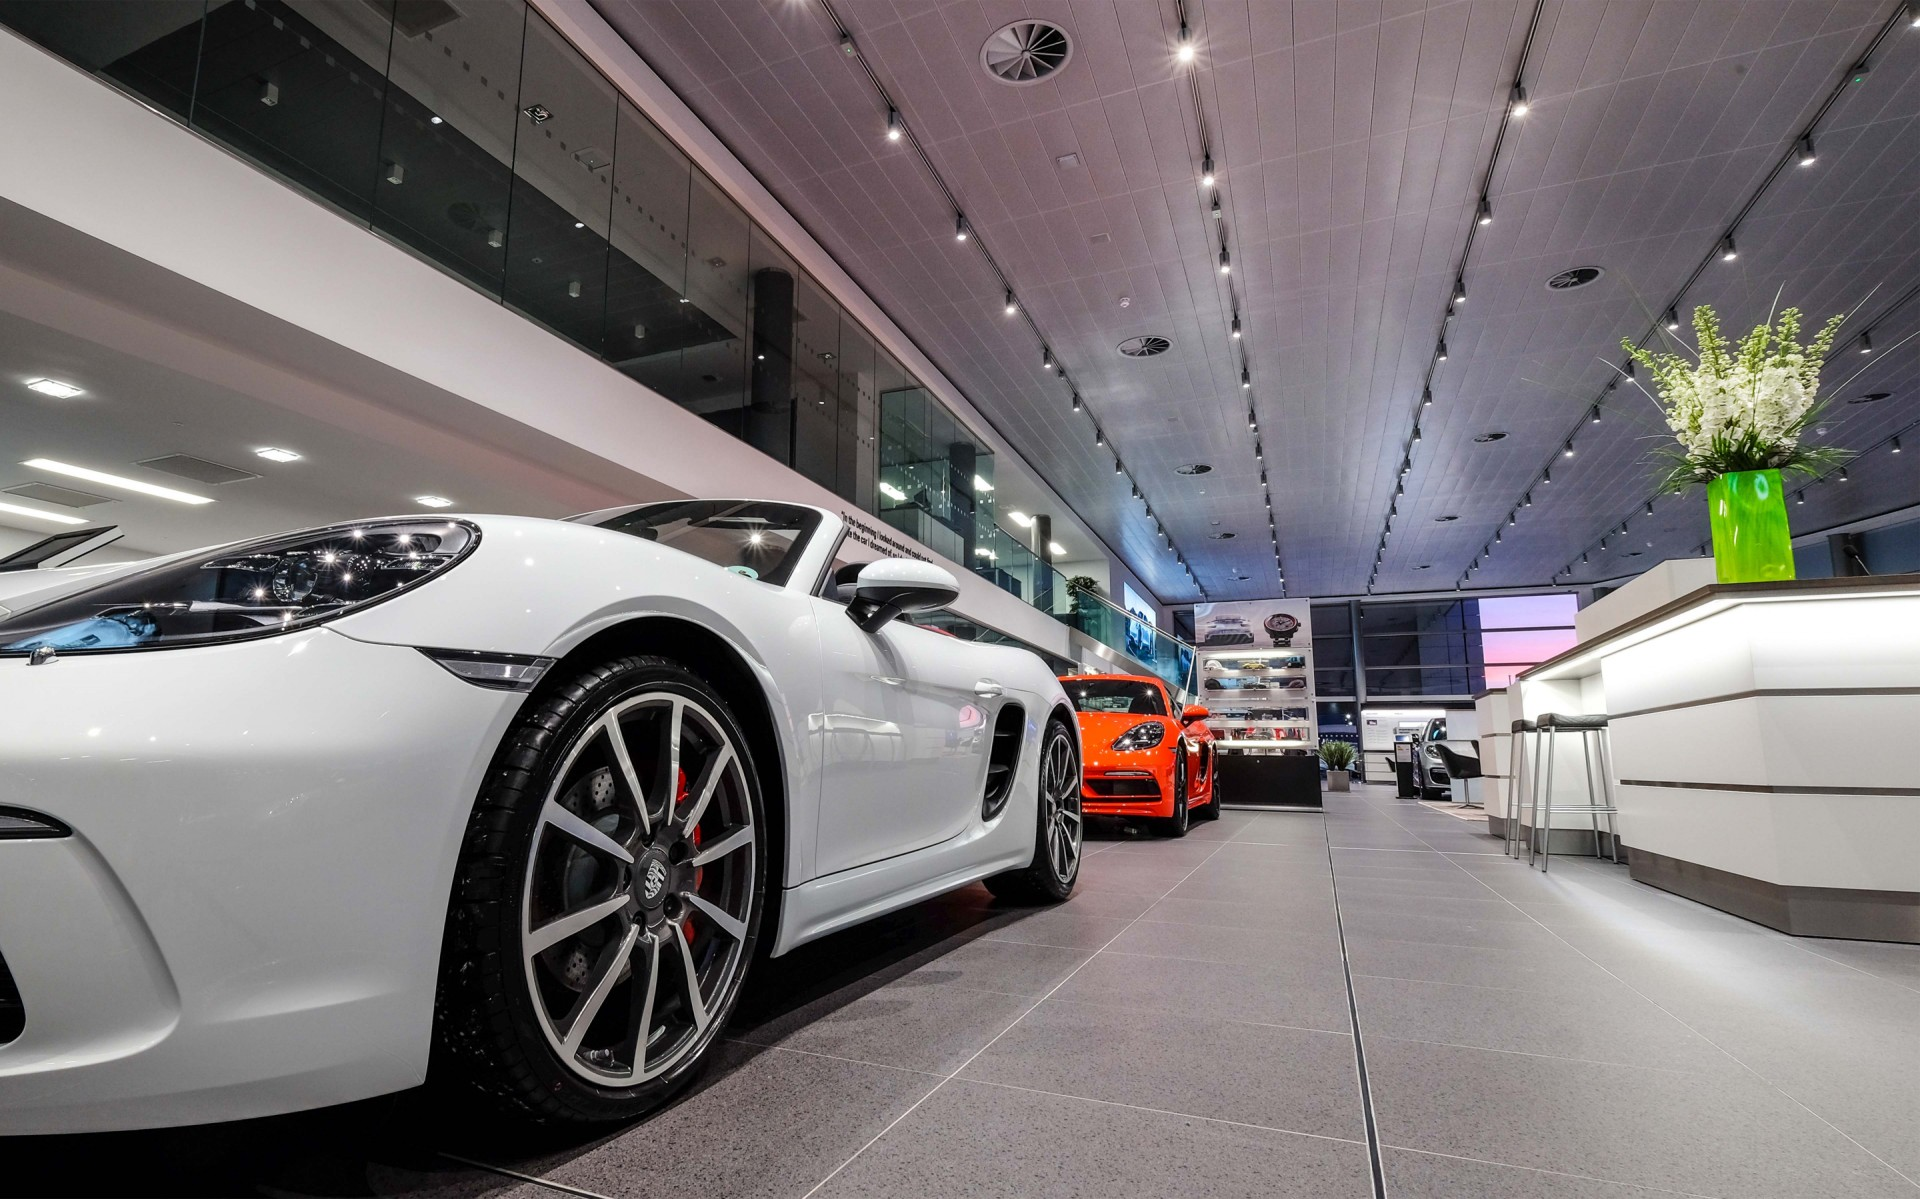 The M Spots used in Belfast's Porsche showroom, specified with a color temperature of 3000K and CRI95, offer only exceptional color rendering. – Lloyd Crawford